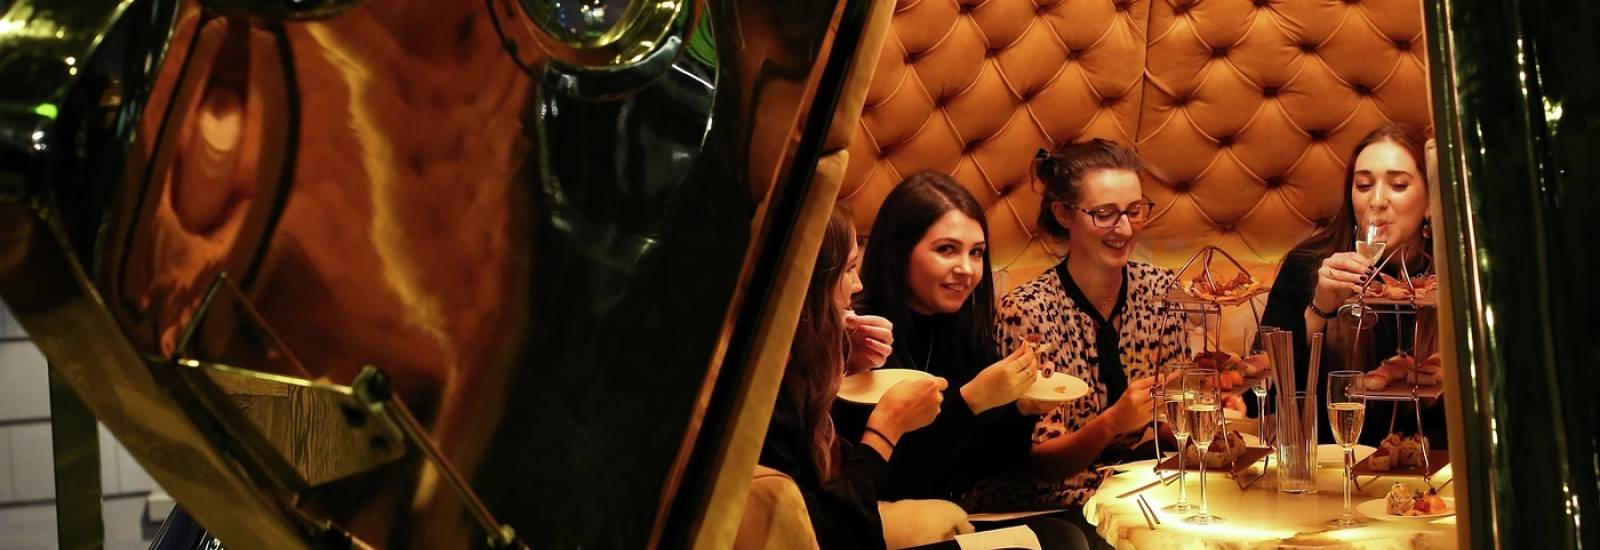 Street Lounge | Private Dining in St Paul's | Gordon Ramsay